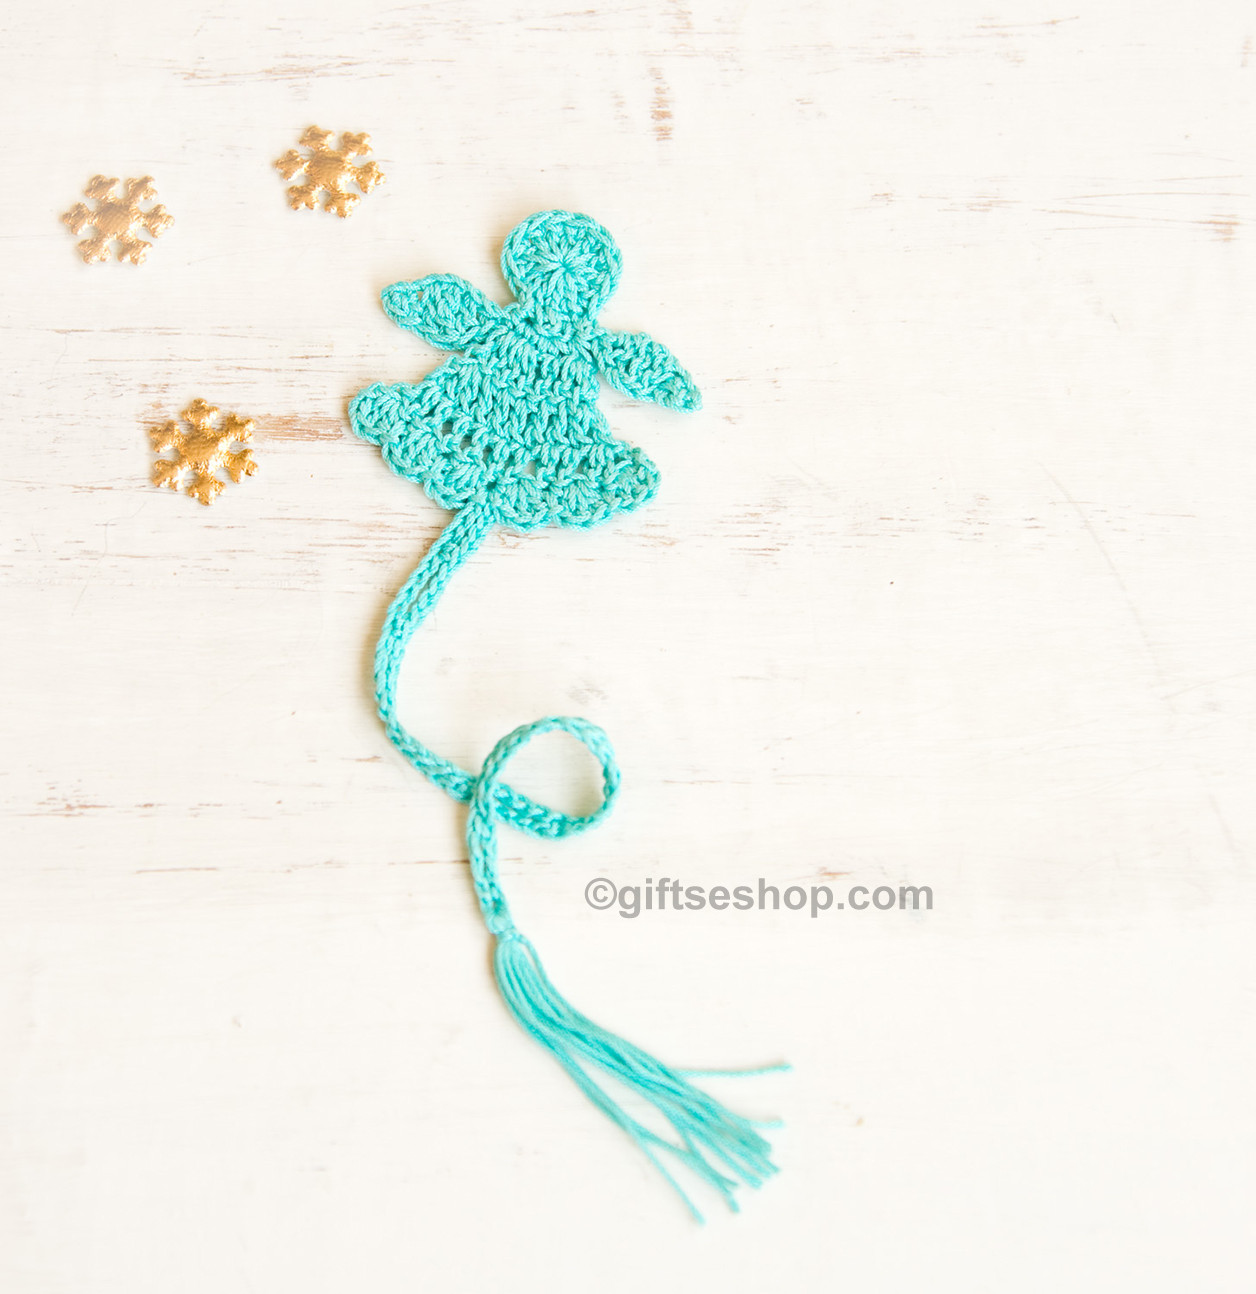 Lana creations My knitting work knit project and free